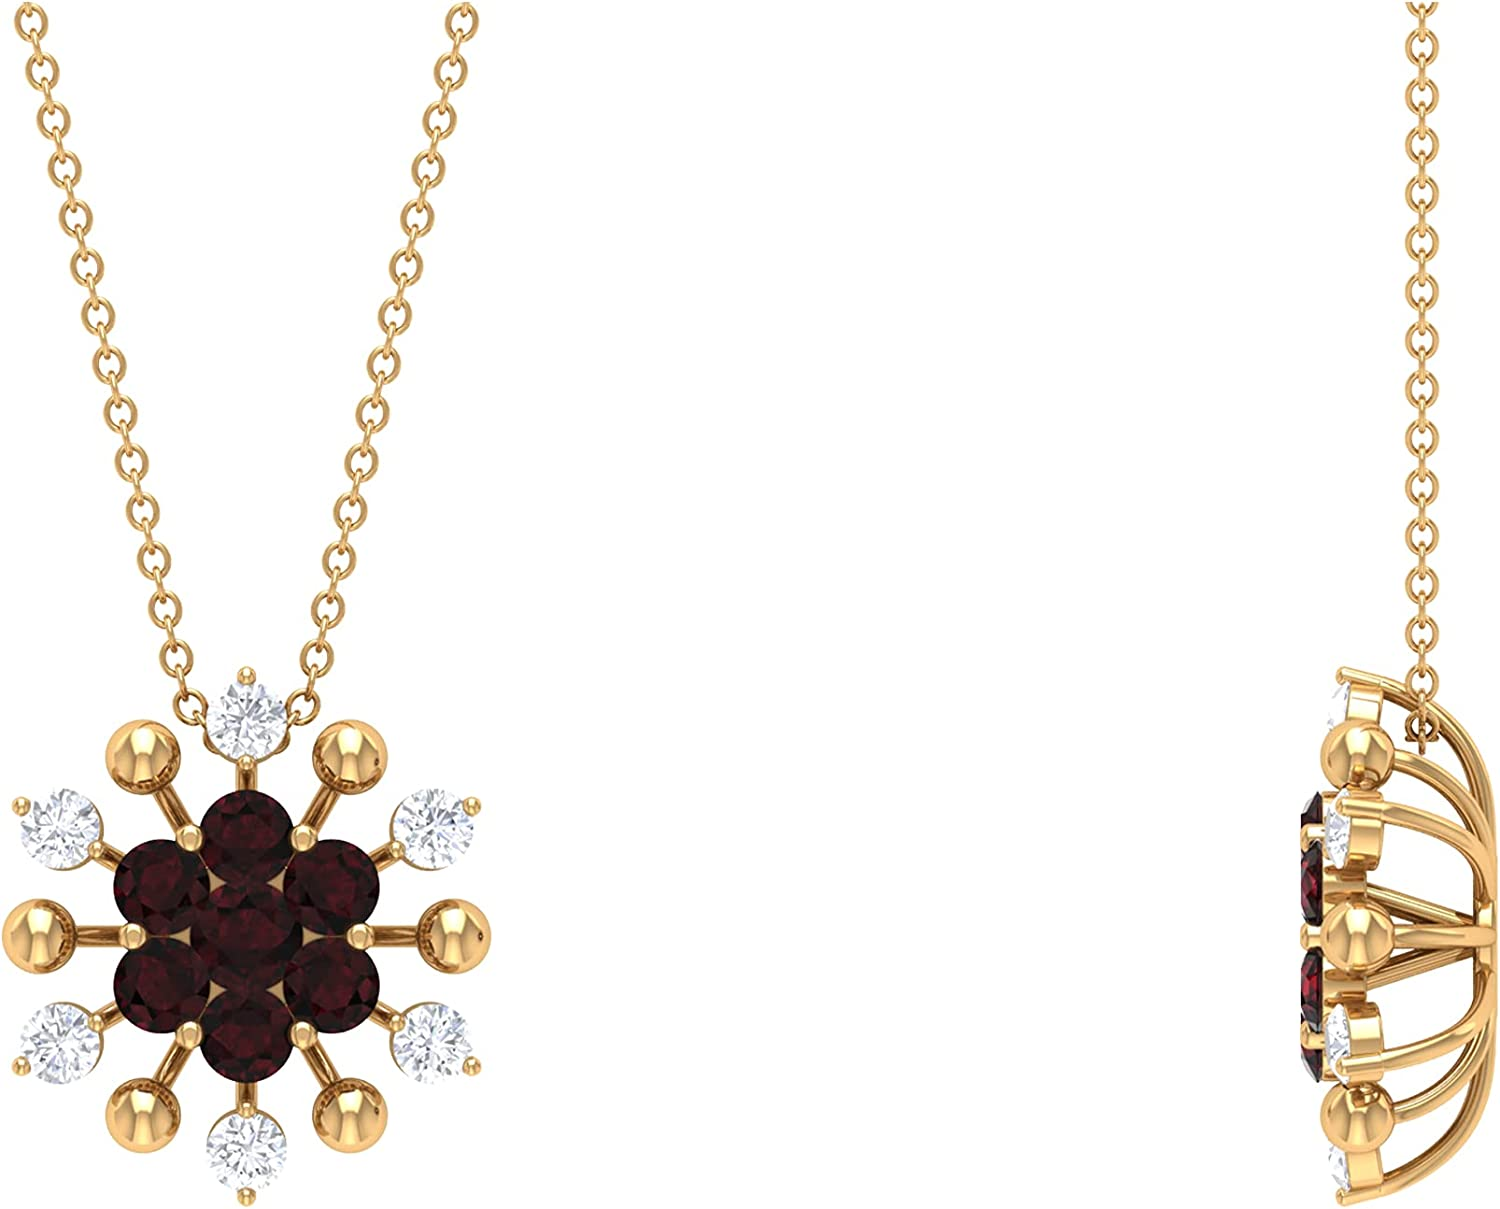 1.25 CT Garnet and Diamond Floral Austin Max 53% OFF Mall Cluster Necklace Y Pendant 14K